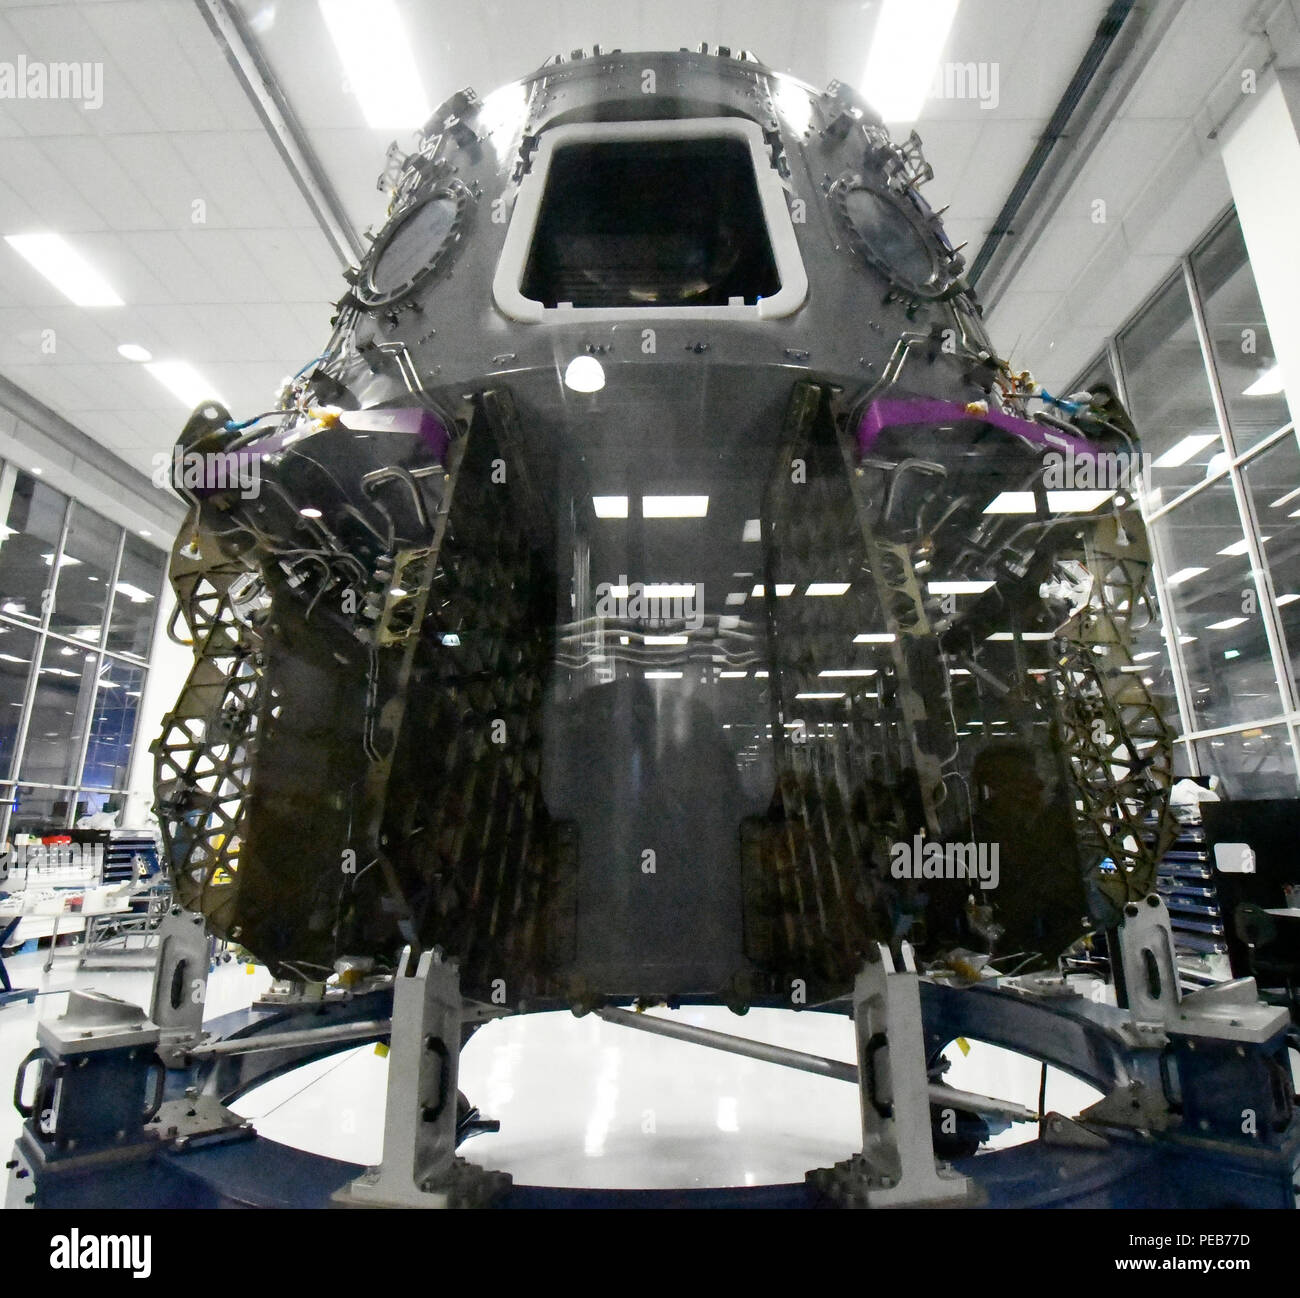 Hawthorne, California, USA. 13th August, 2018. SpaceX displays one of a few new dragon crew capsule being built during a press conference with NASA Astronauts Monday. They will be the first to go up in the new Commercial Crew Dragon capsule to the ISS (International Space Station).Photo by Gene Blevins/LA DailyNews/SCNG/ZumaPress Credit: Gene Blevins/ZUMA Wire/Alamy Live News - Stock Image